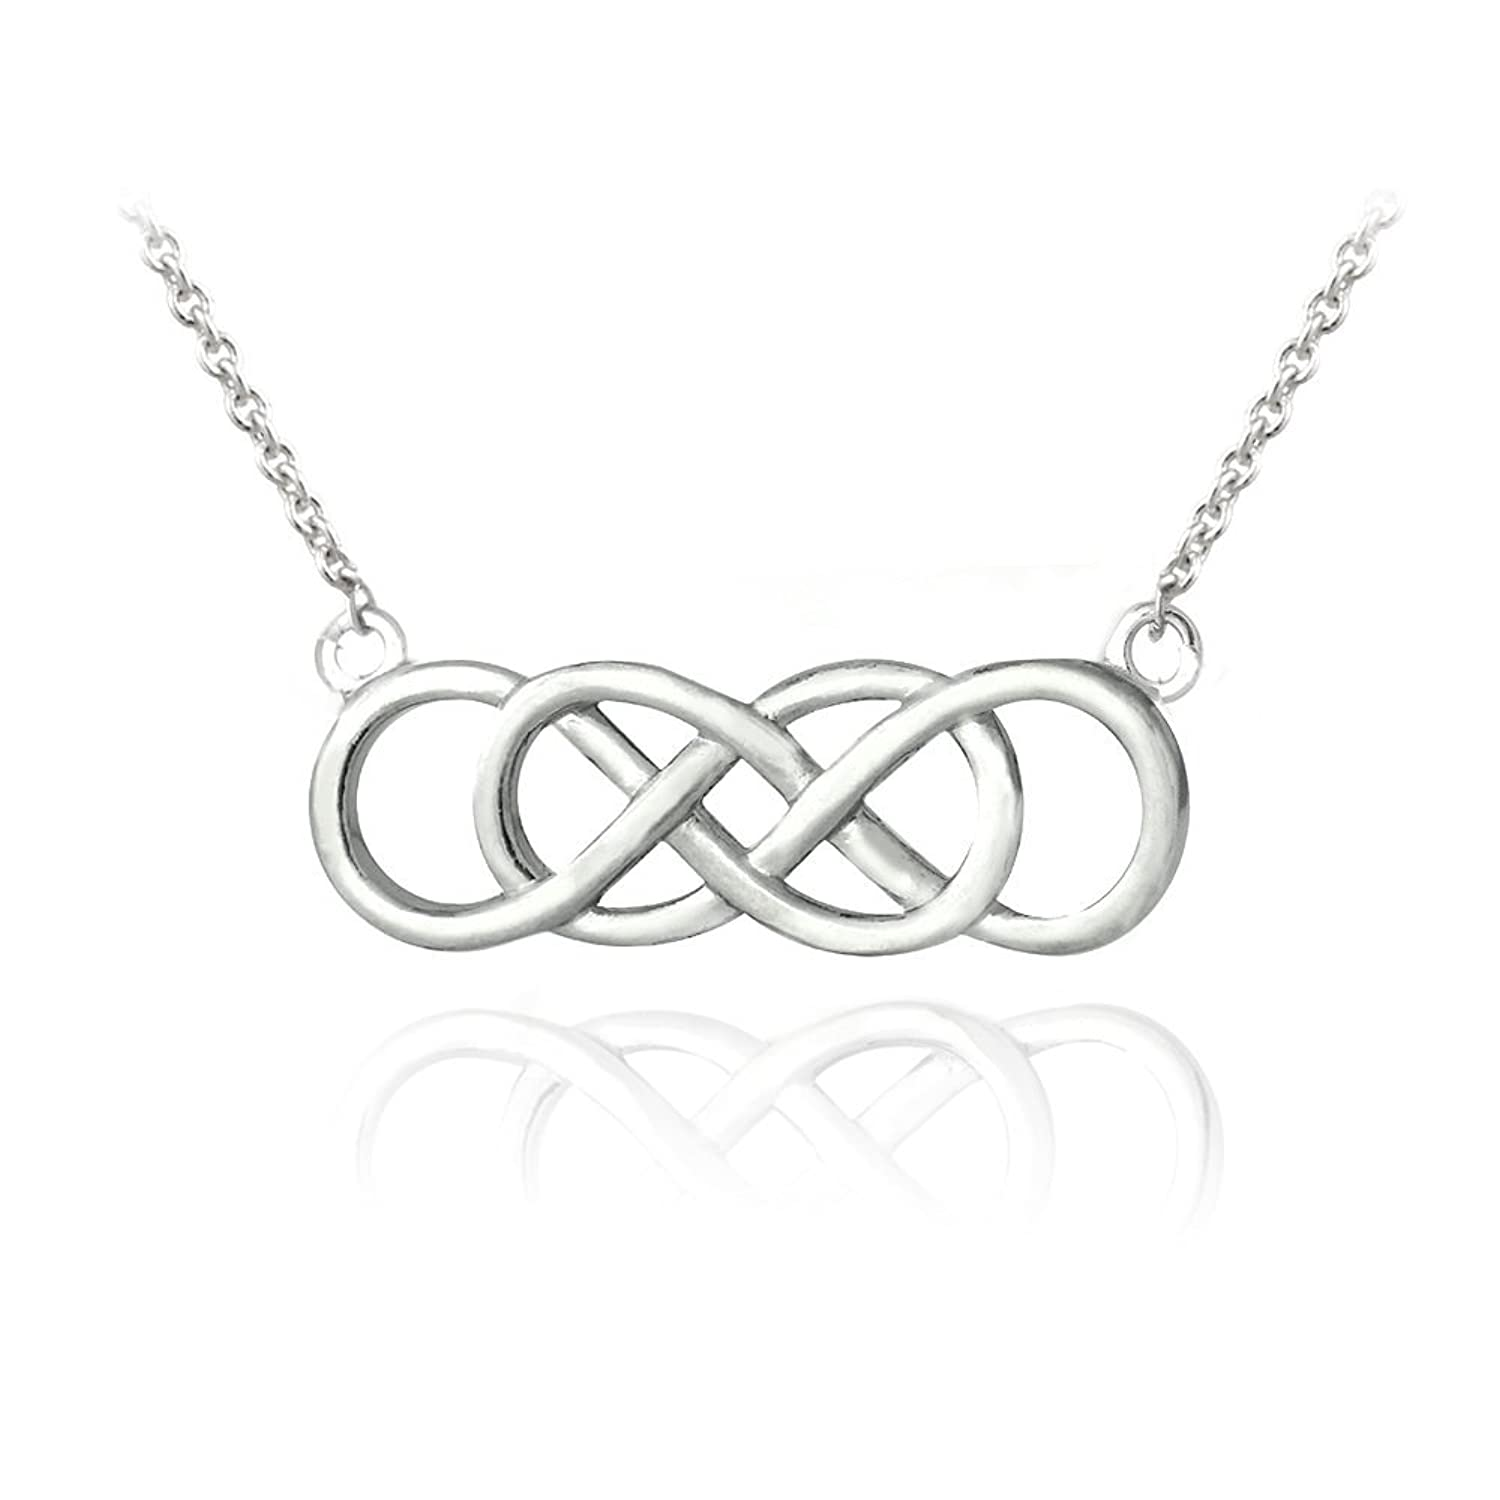 Amazon sterling silver double infinity symbol necklace chain hoops loops sterling silver double infinity necklace biocorpaavc Image collections